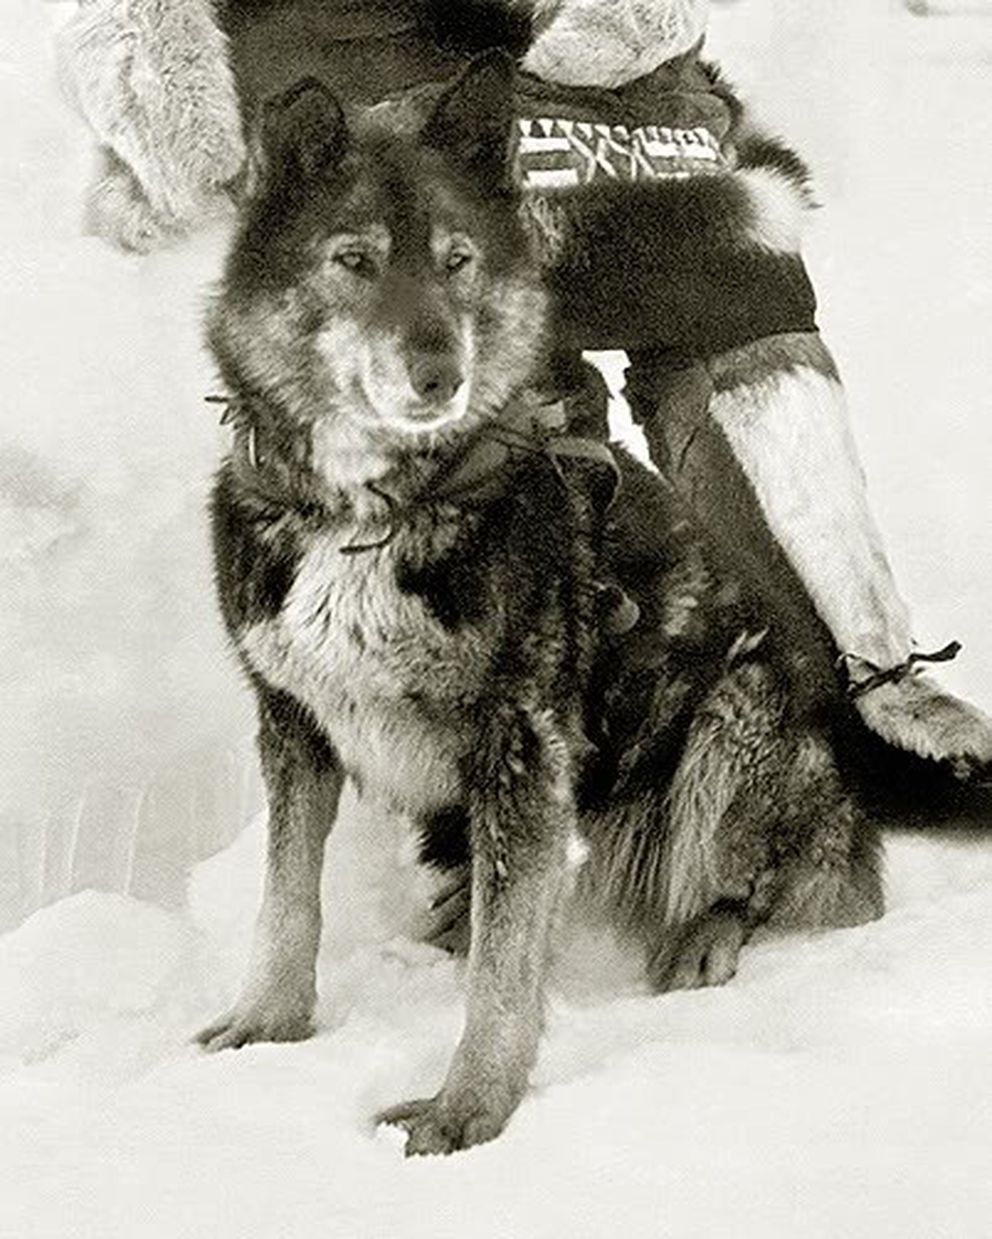 Togo was the lead dog for Leonhard Seppala's team during the longest and most dangerous leg of the serum run to Nome in 1925. (Stefannaumovv via Creative Commons)